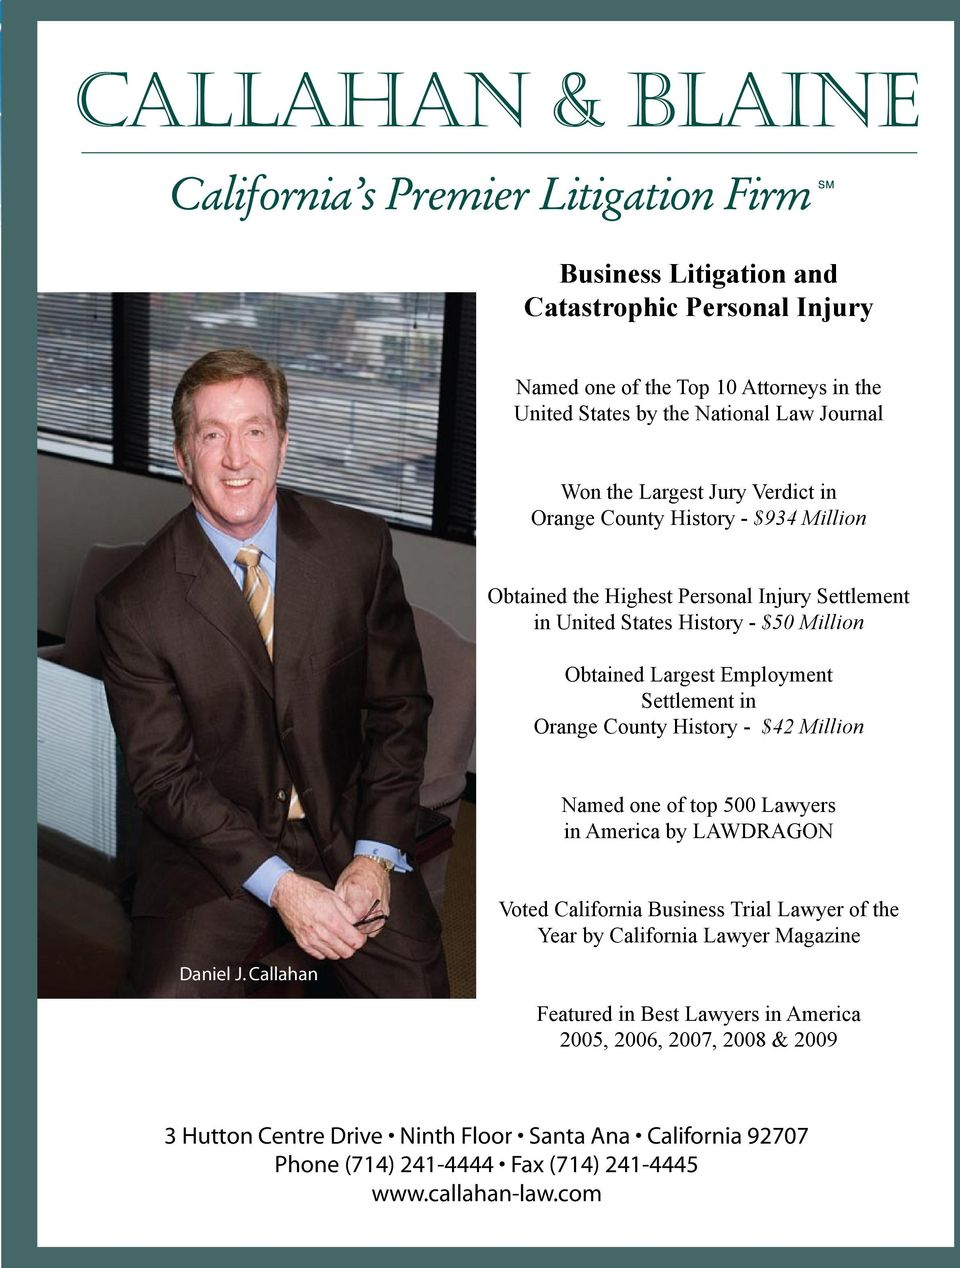 History - $42 Million Named one of top 500 Lawyers in America by LAWDRAGON Voted California Business Trial Lawyer of the Year by California Lawyer Magazine Daniel J.